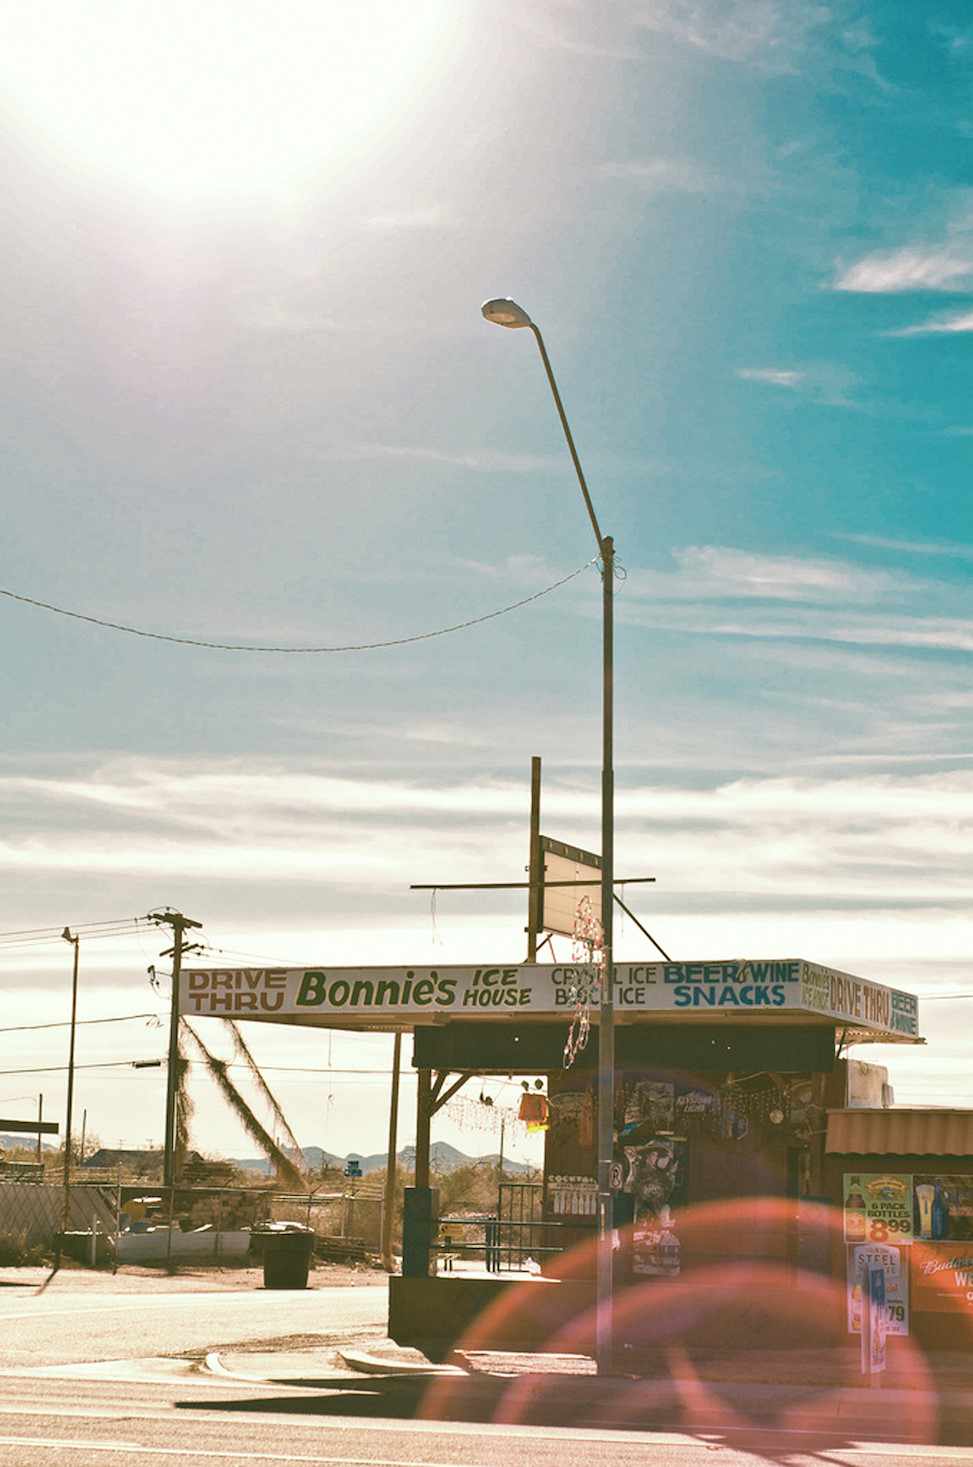 Bonnie's ice house, gila bend, arizona